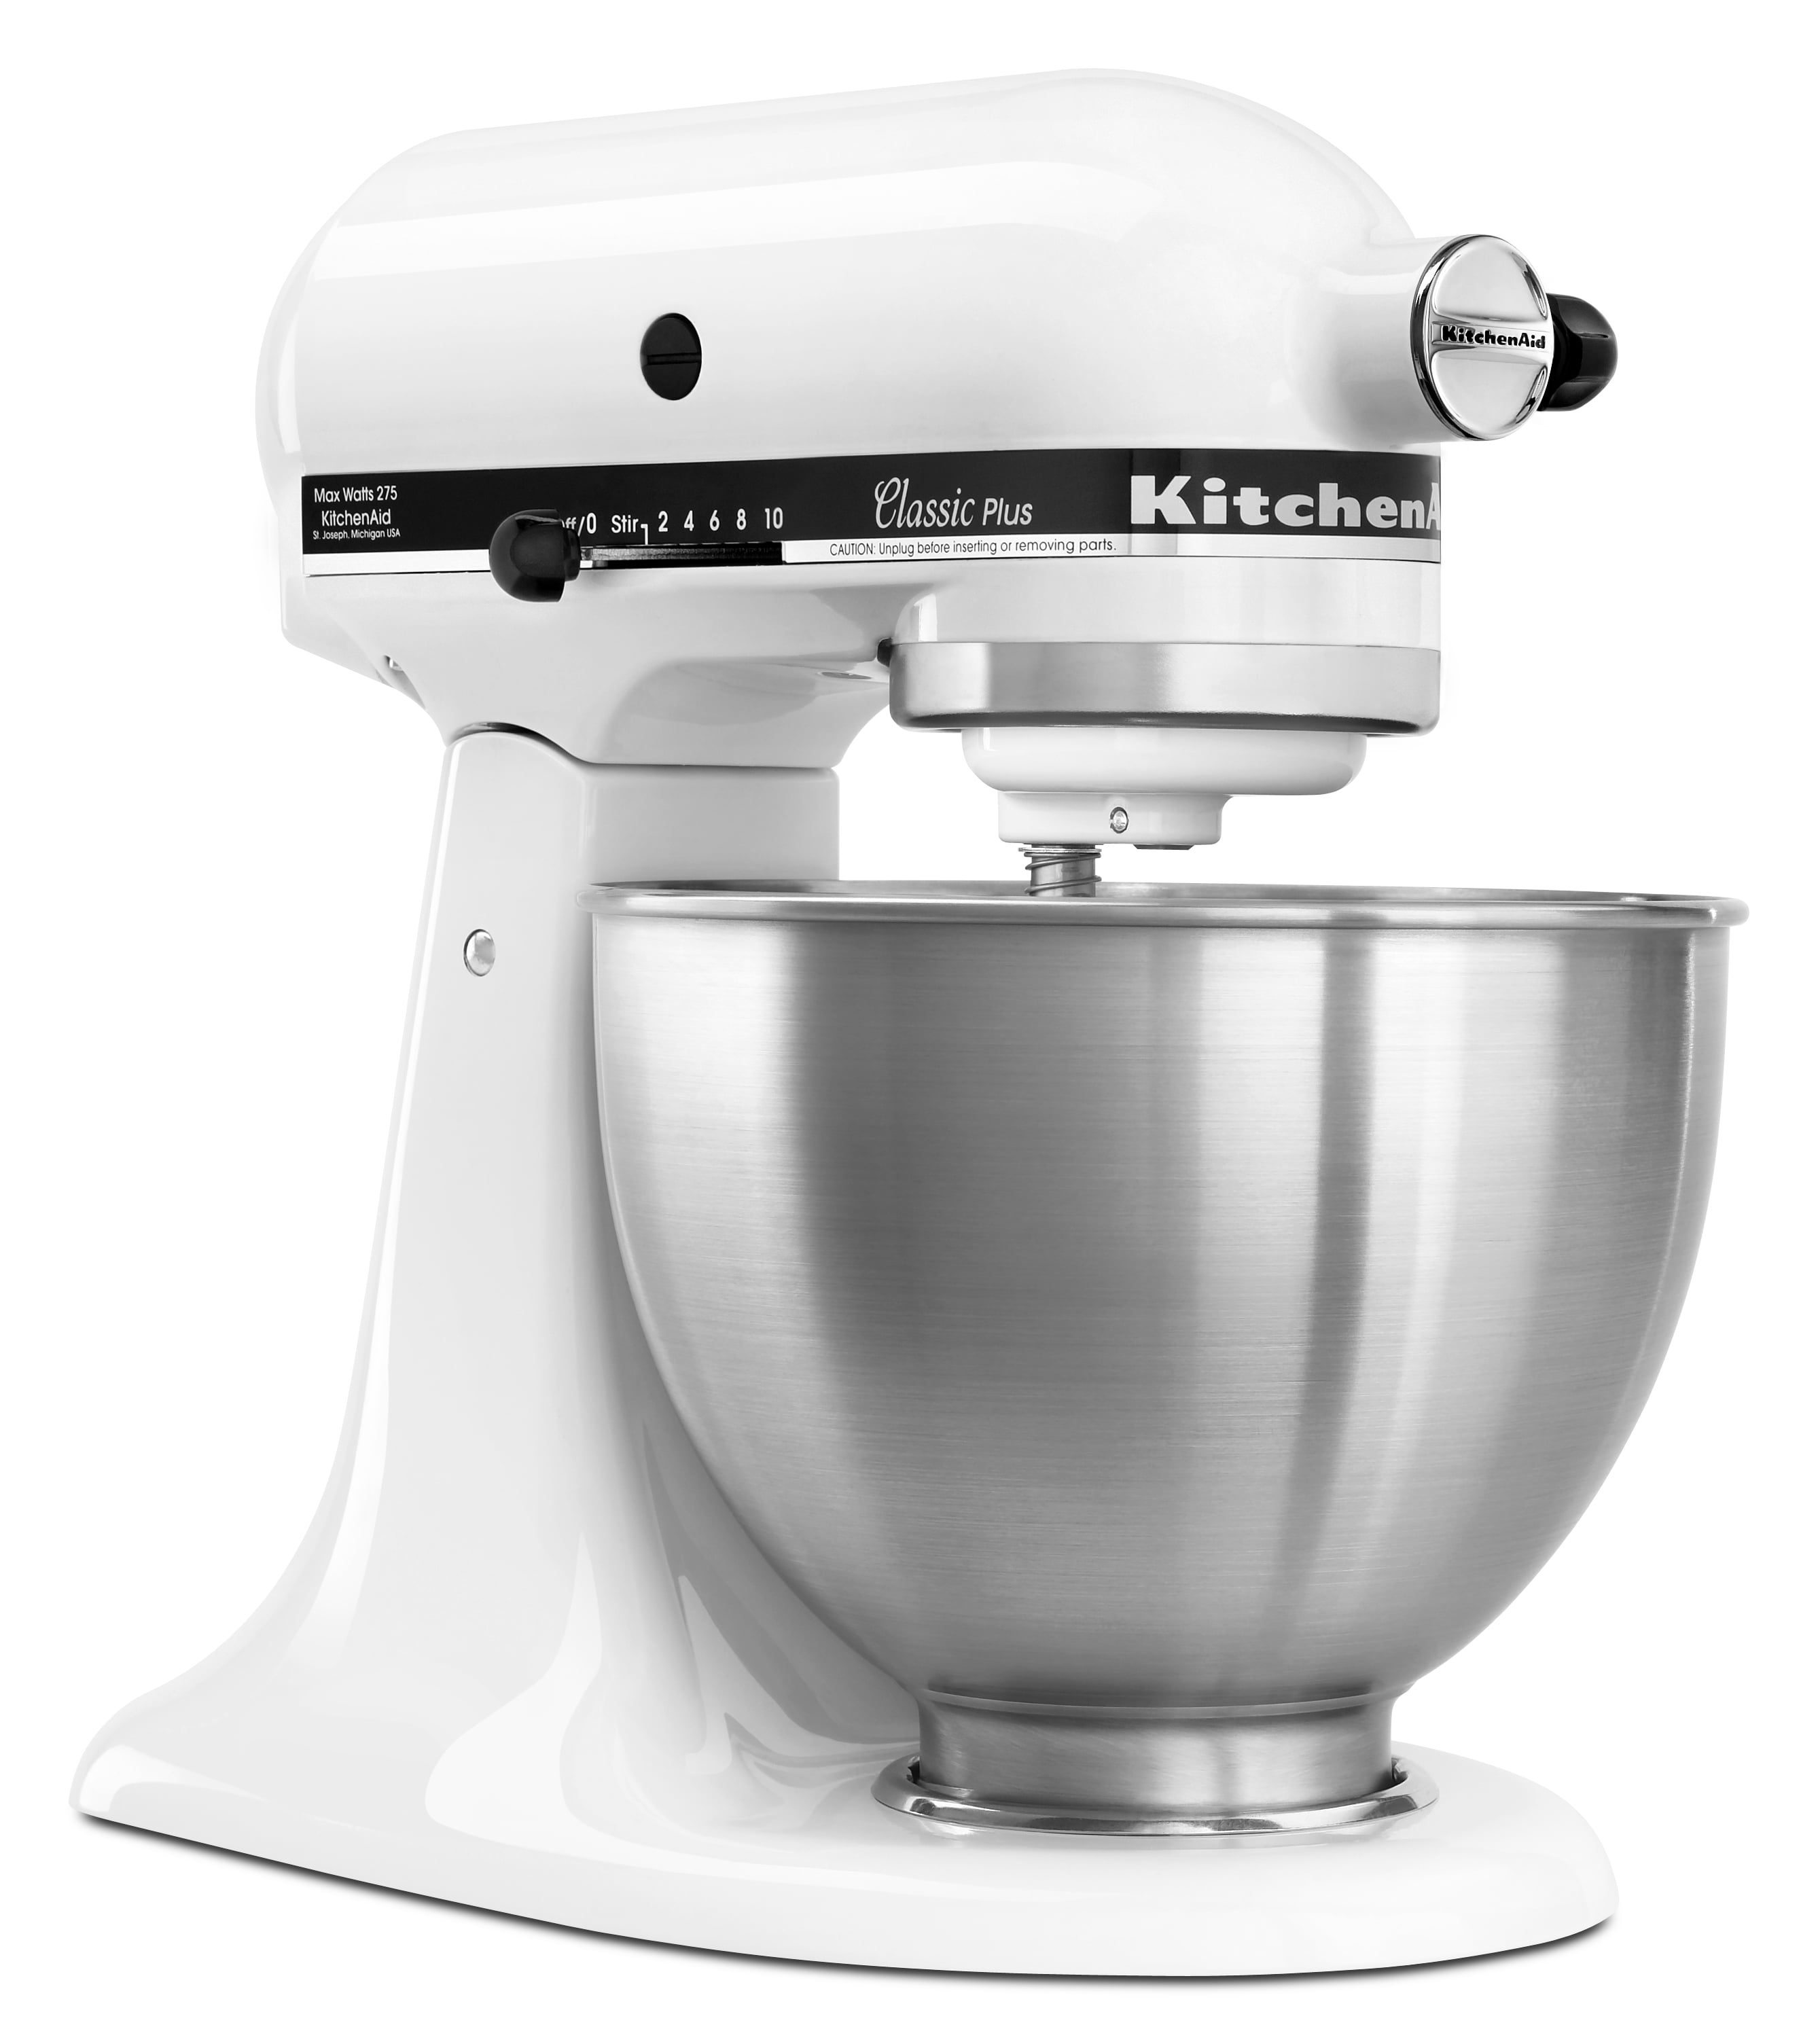 NEW-KitchenAid-Classic-Plus-Series-4-5-Quart-Tilt-Head-Stand-Mixer-KSM75 thumbnail 16